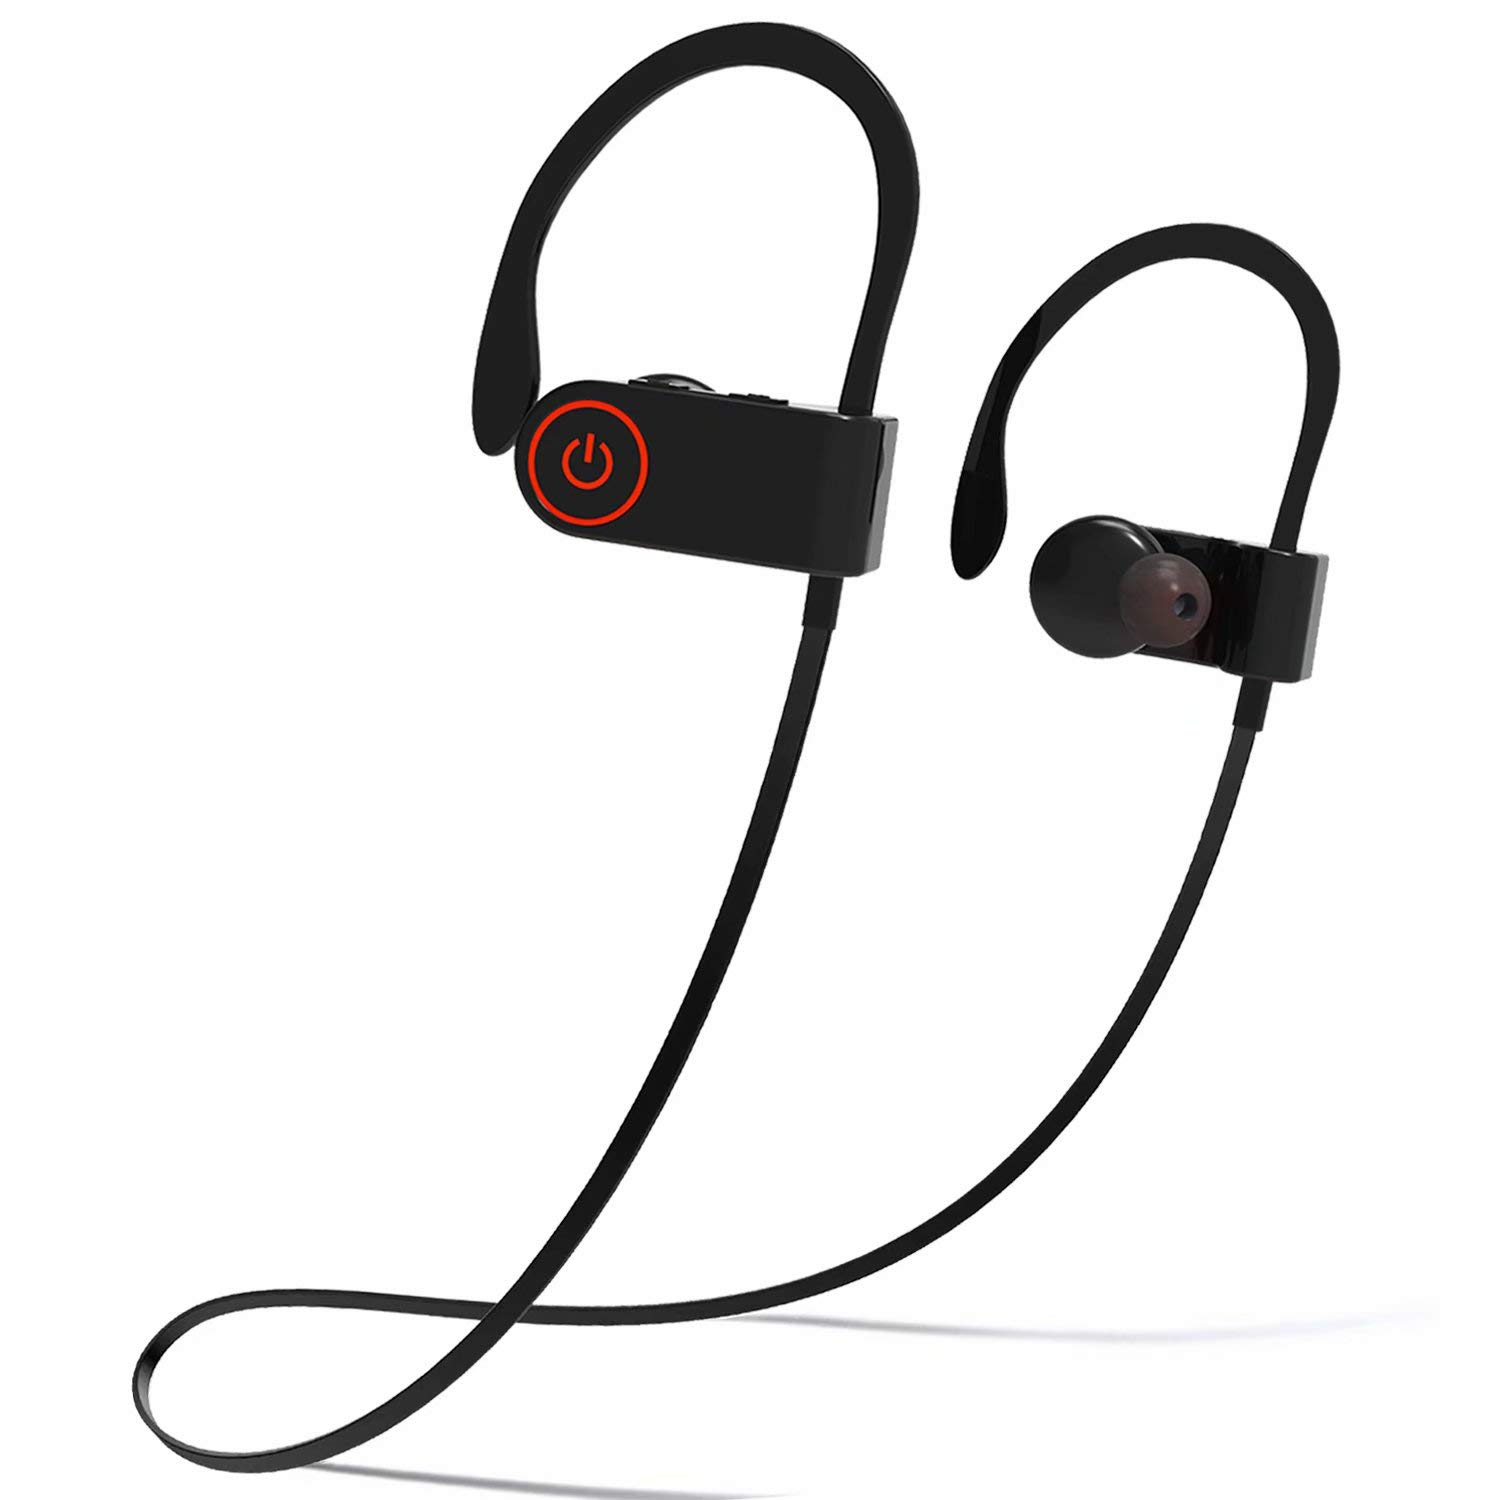 Bluetooth Headphones, Waterproof IPX6 Wireless Earbuds Sport, Richer Bass HiFi Stereo in-Ear Earphones w Mic, Noise Isolating Headsets Comfy Fast Pairing Secure Fit for Gym Running Workout, Black